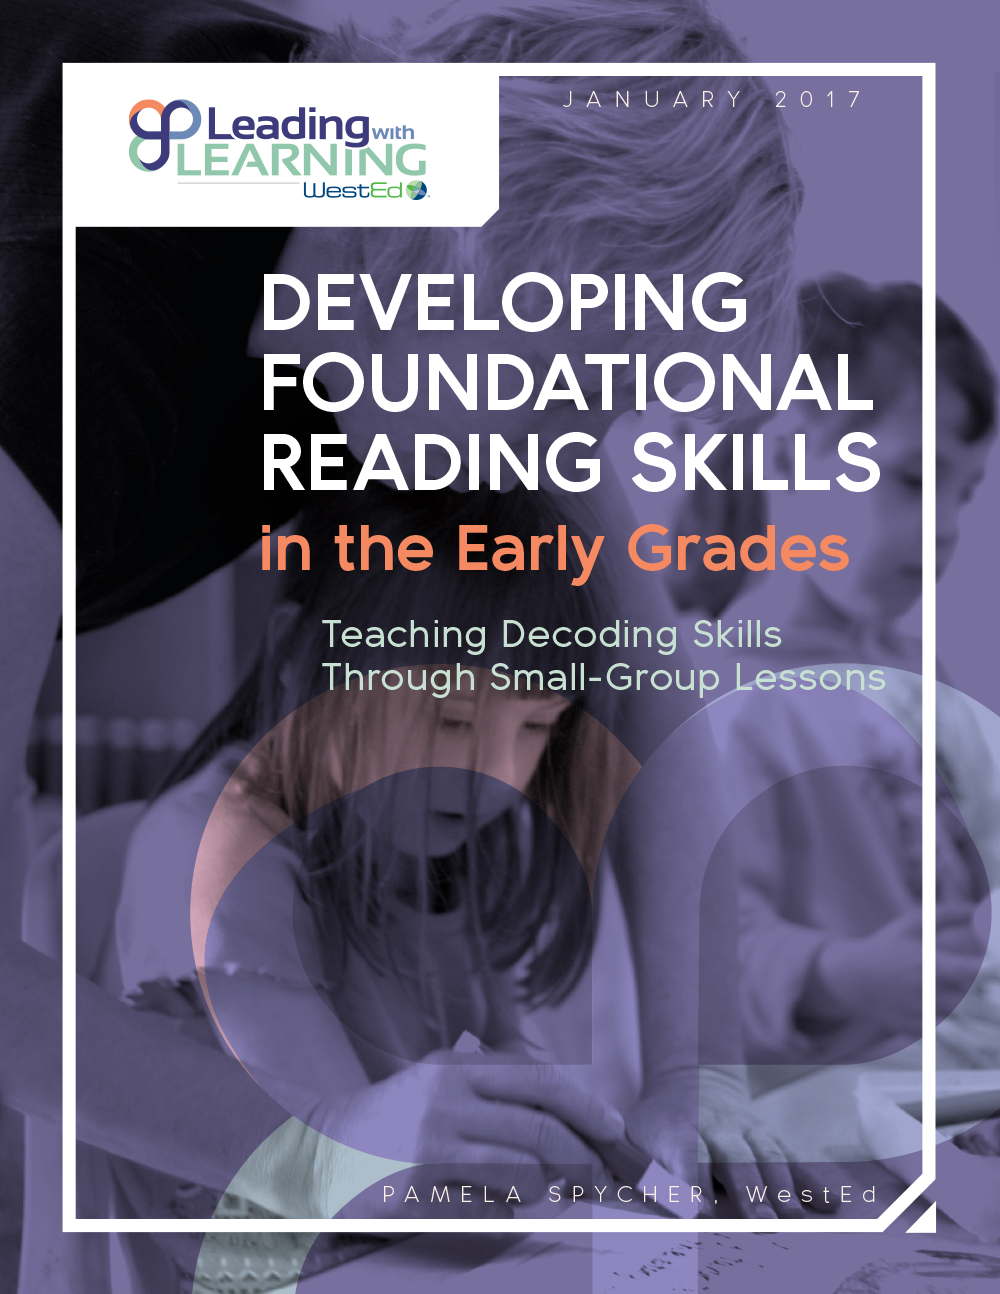 Developing Foundational Reading Skills in the Early Grades: Teaching Decoding Skills Through Small-Group Lessons